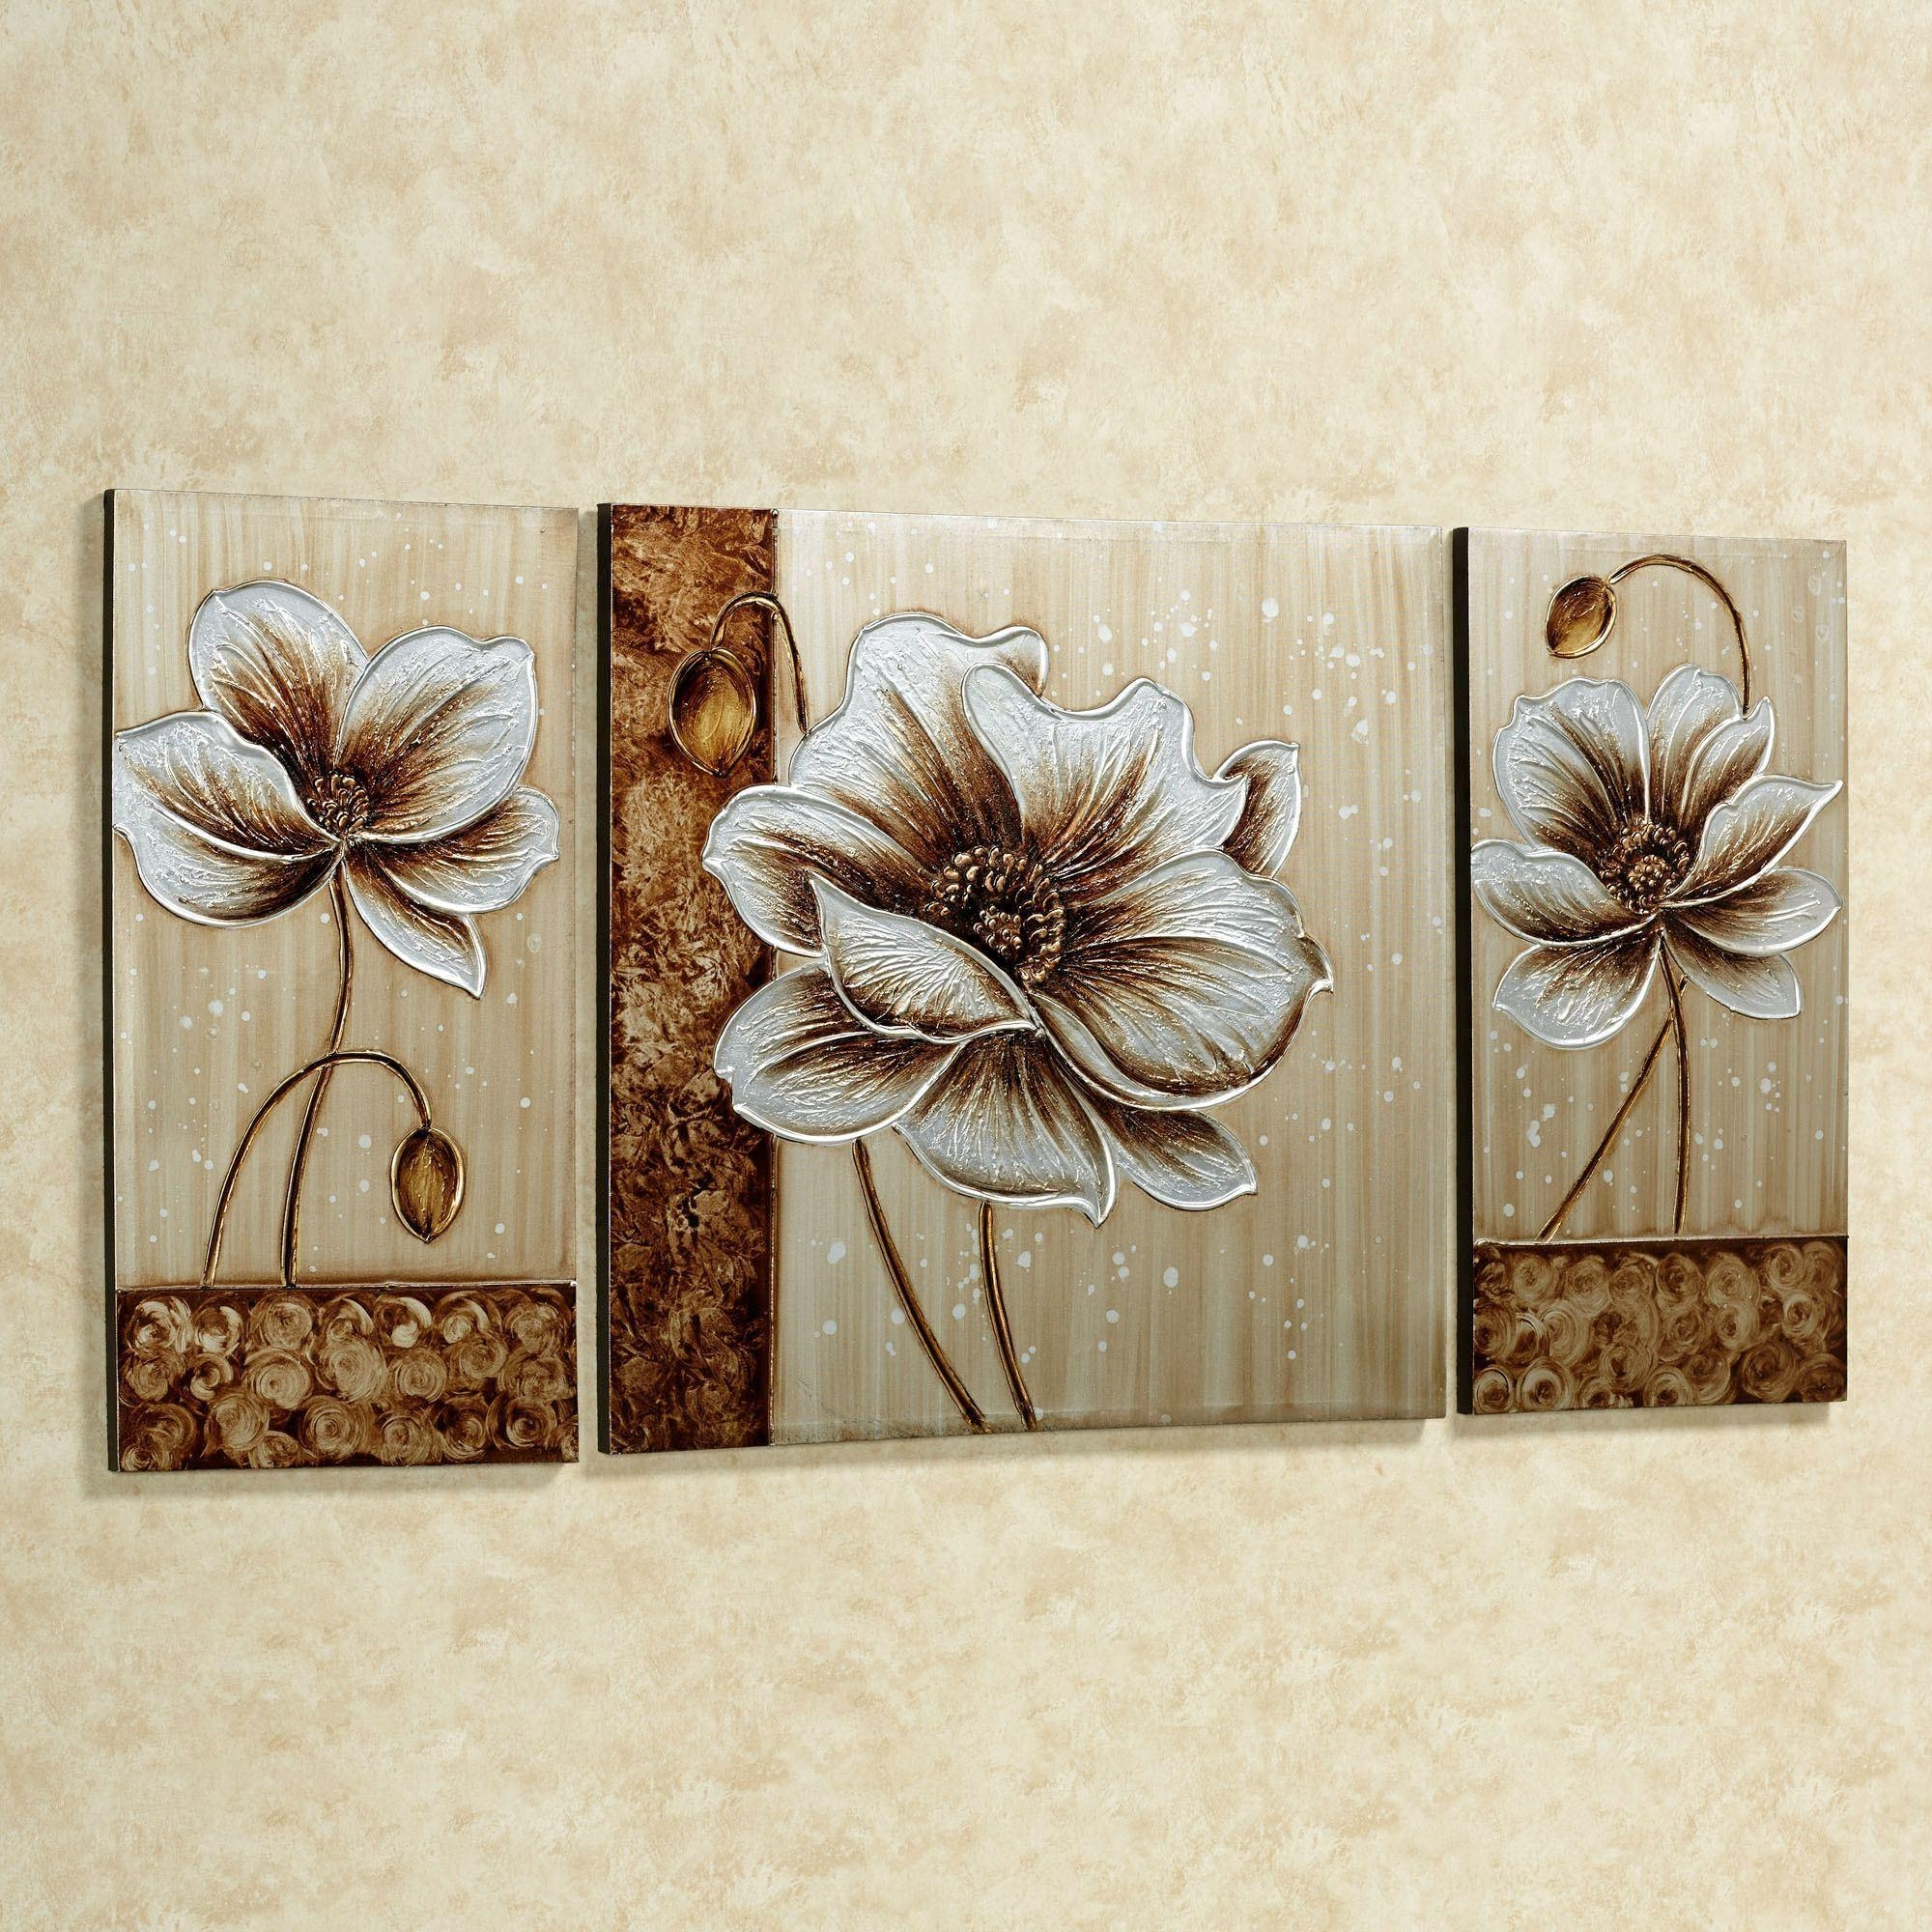 Subtle Elegance Floral Canvas Wall Art Set In Multiple Piece Wall Art (Image 10 of 20)